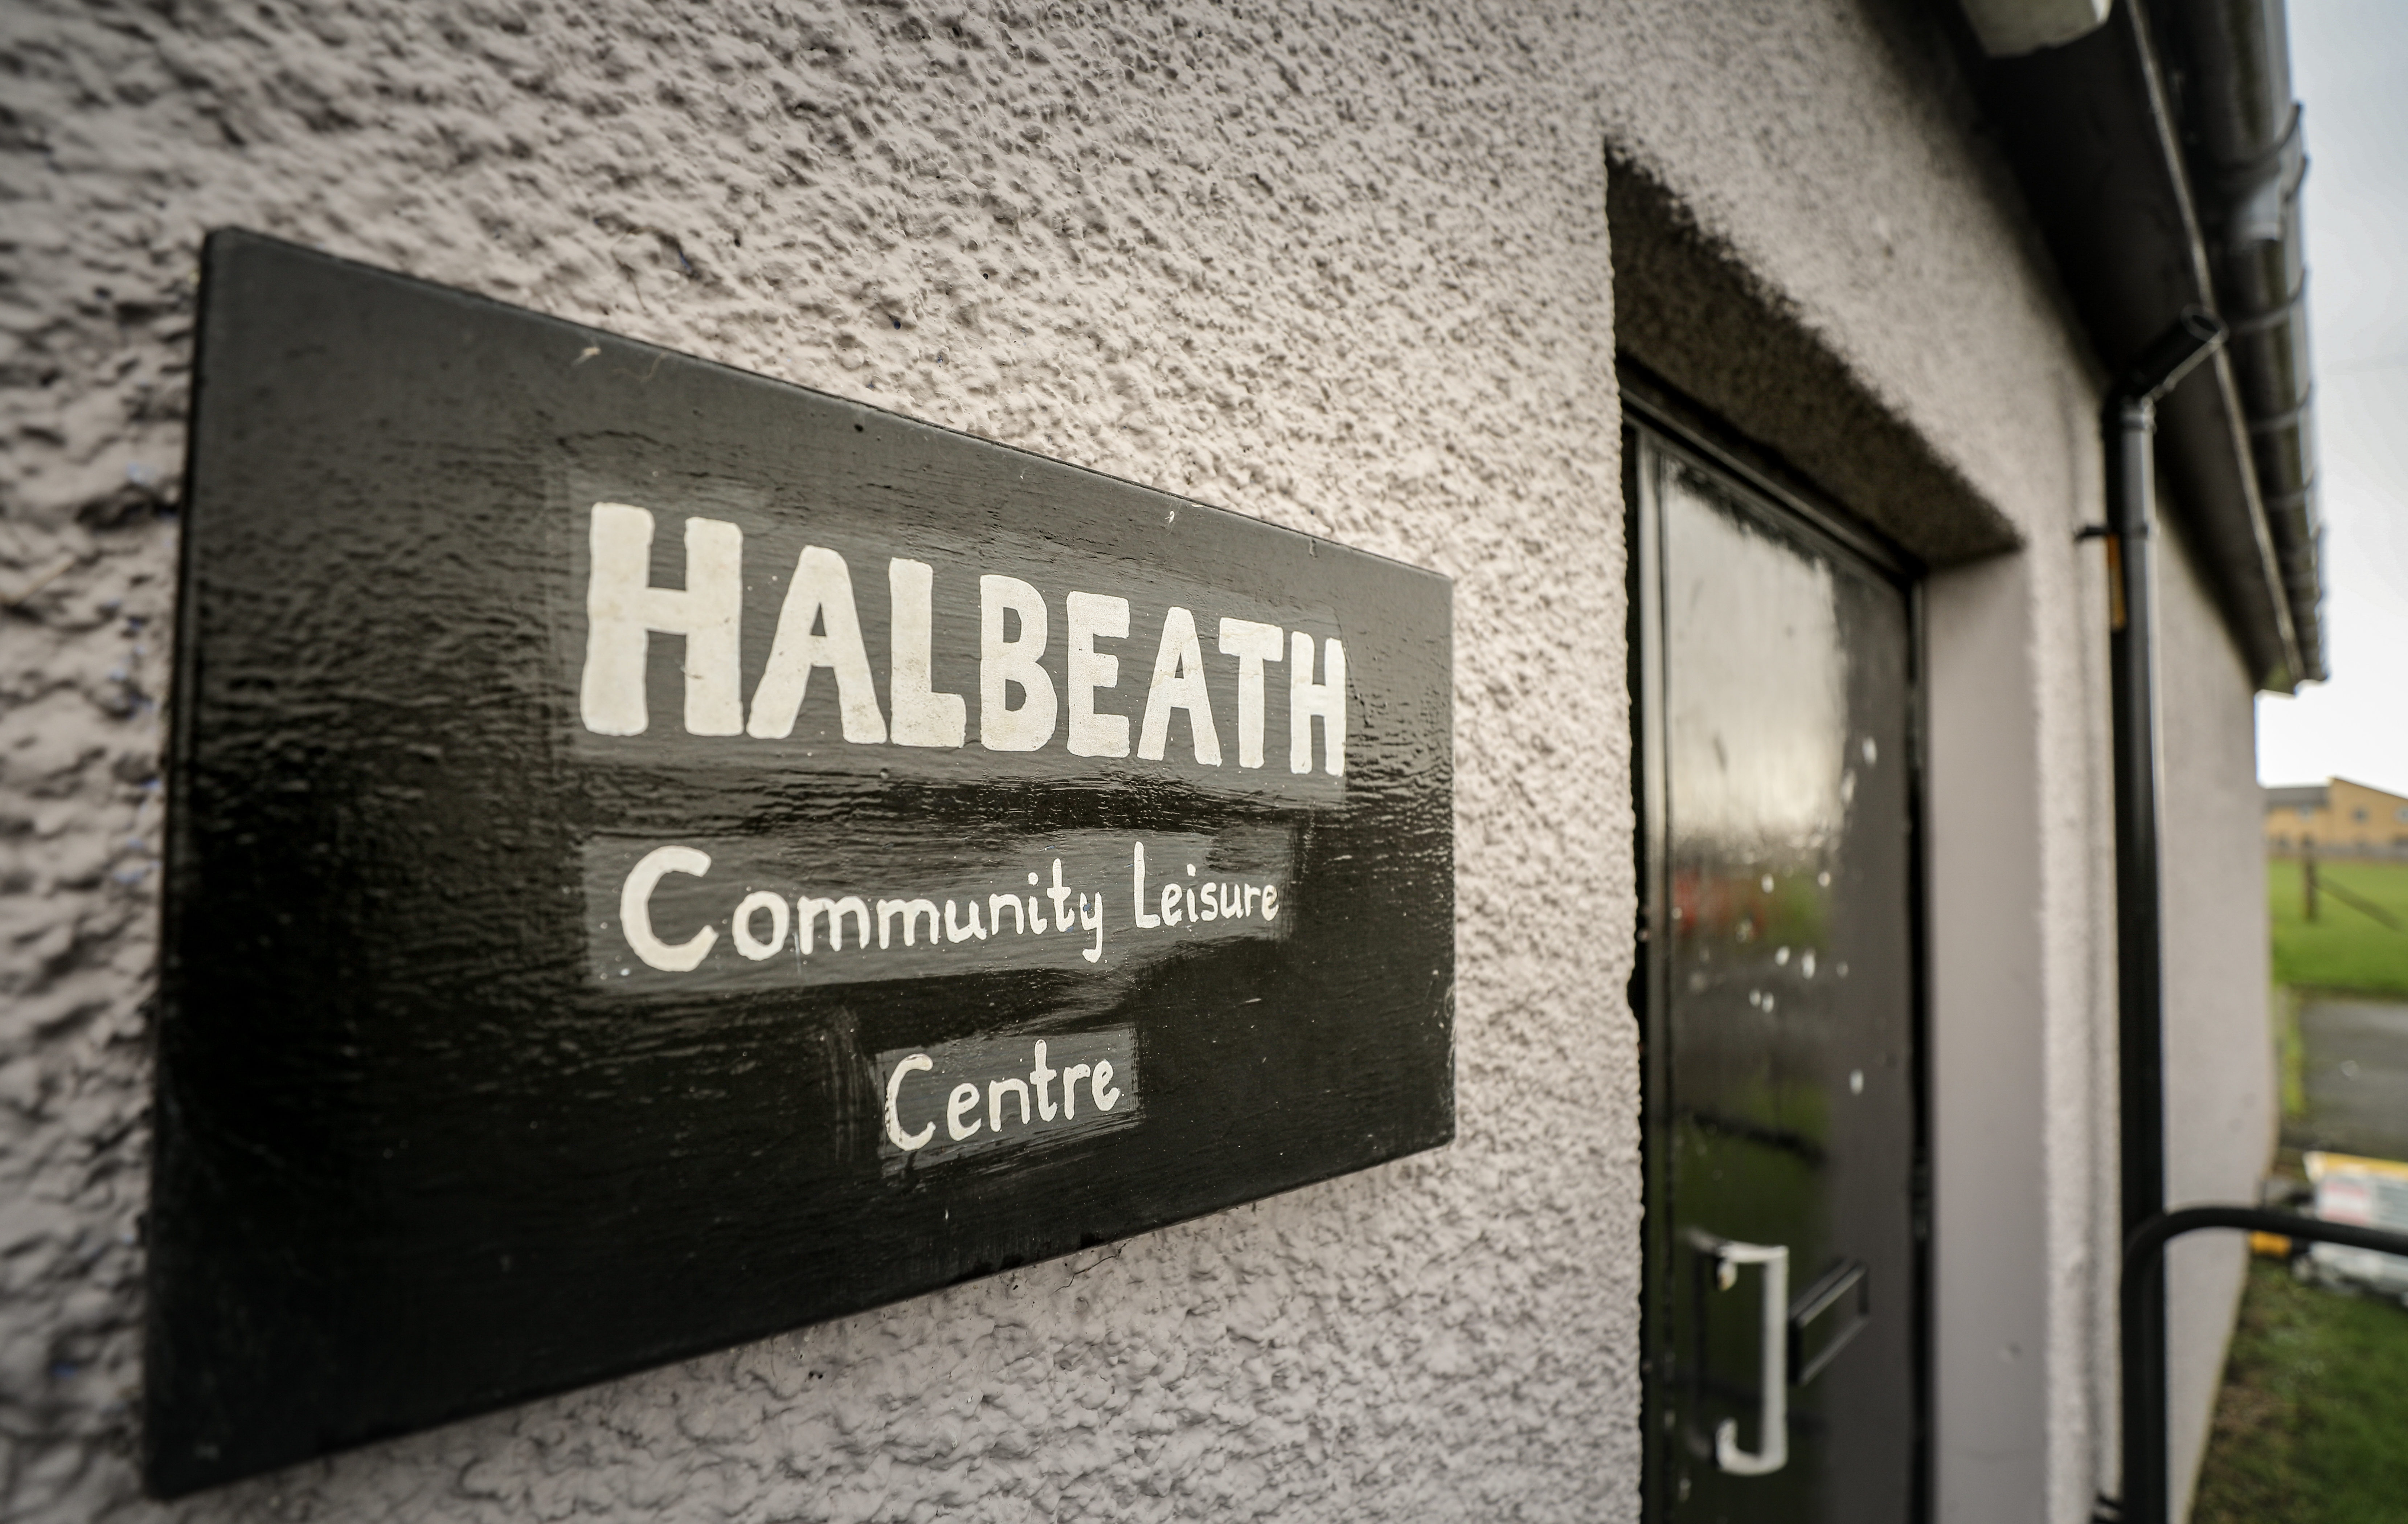 Halbeath community centre will be demolished this spring